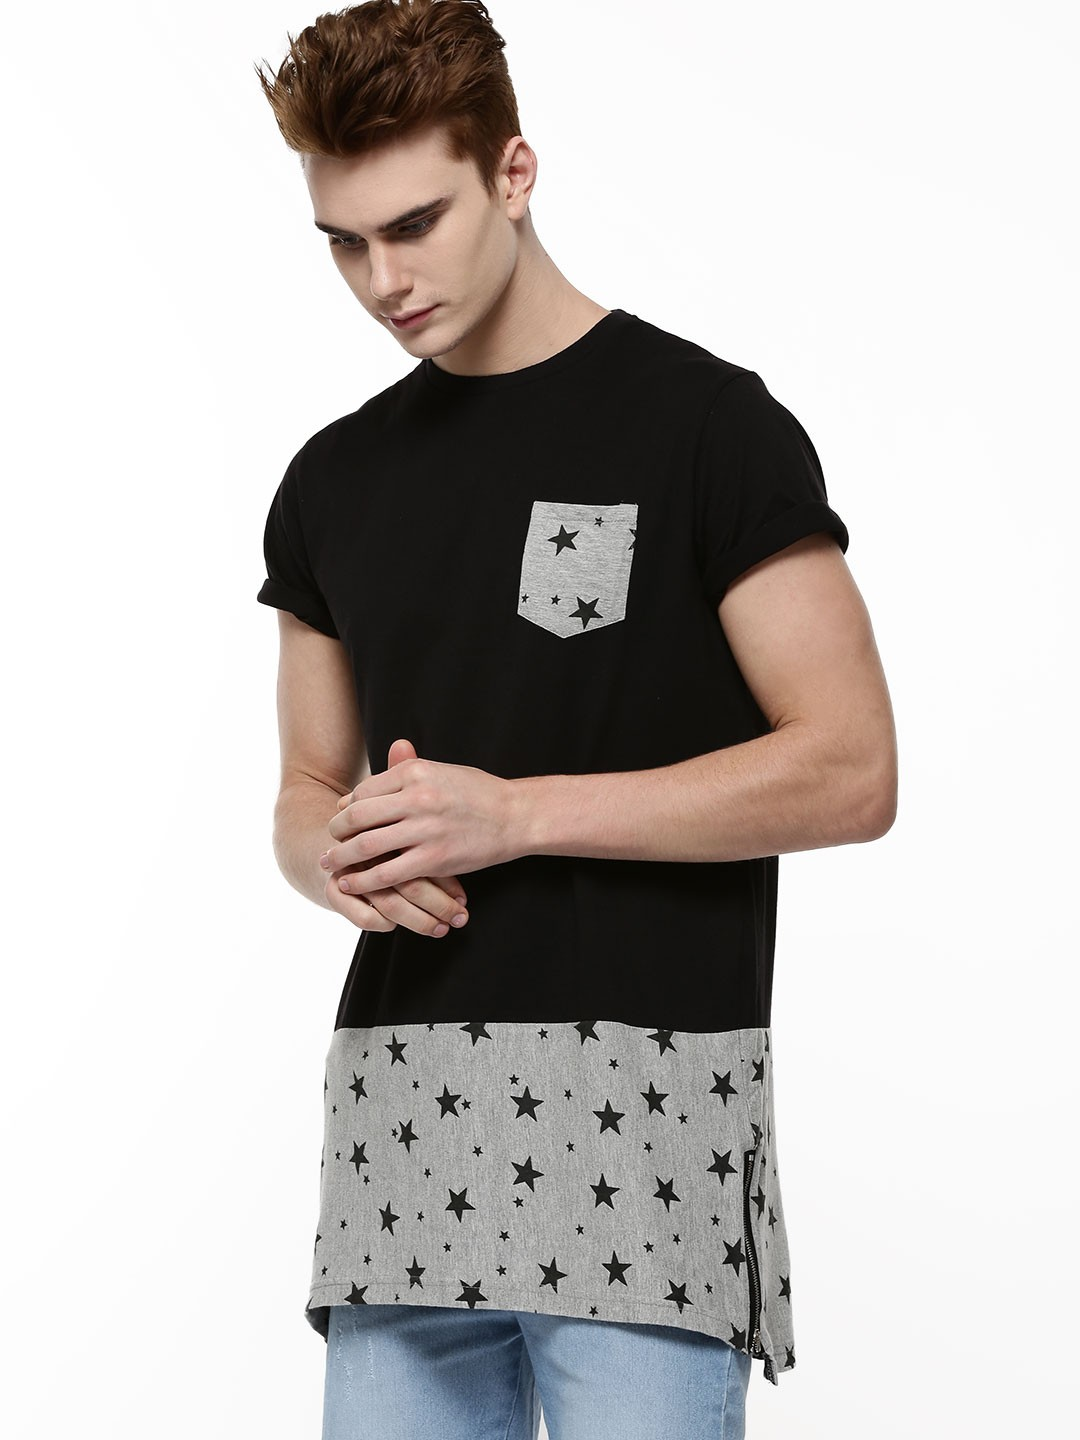 Black t shirt buy online - Spring Break Longline Printed T Shirt Side Zips